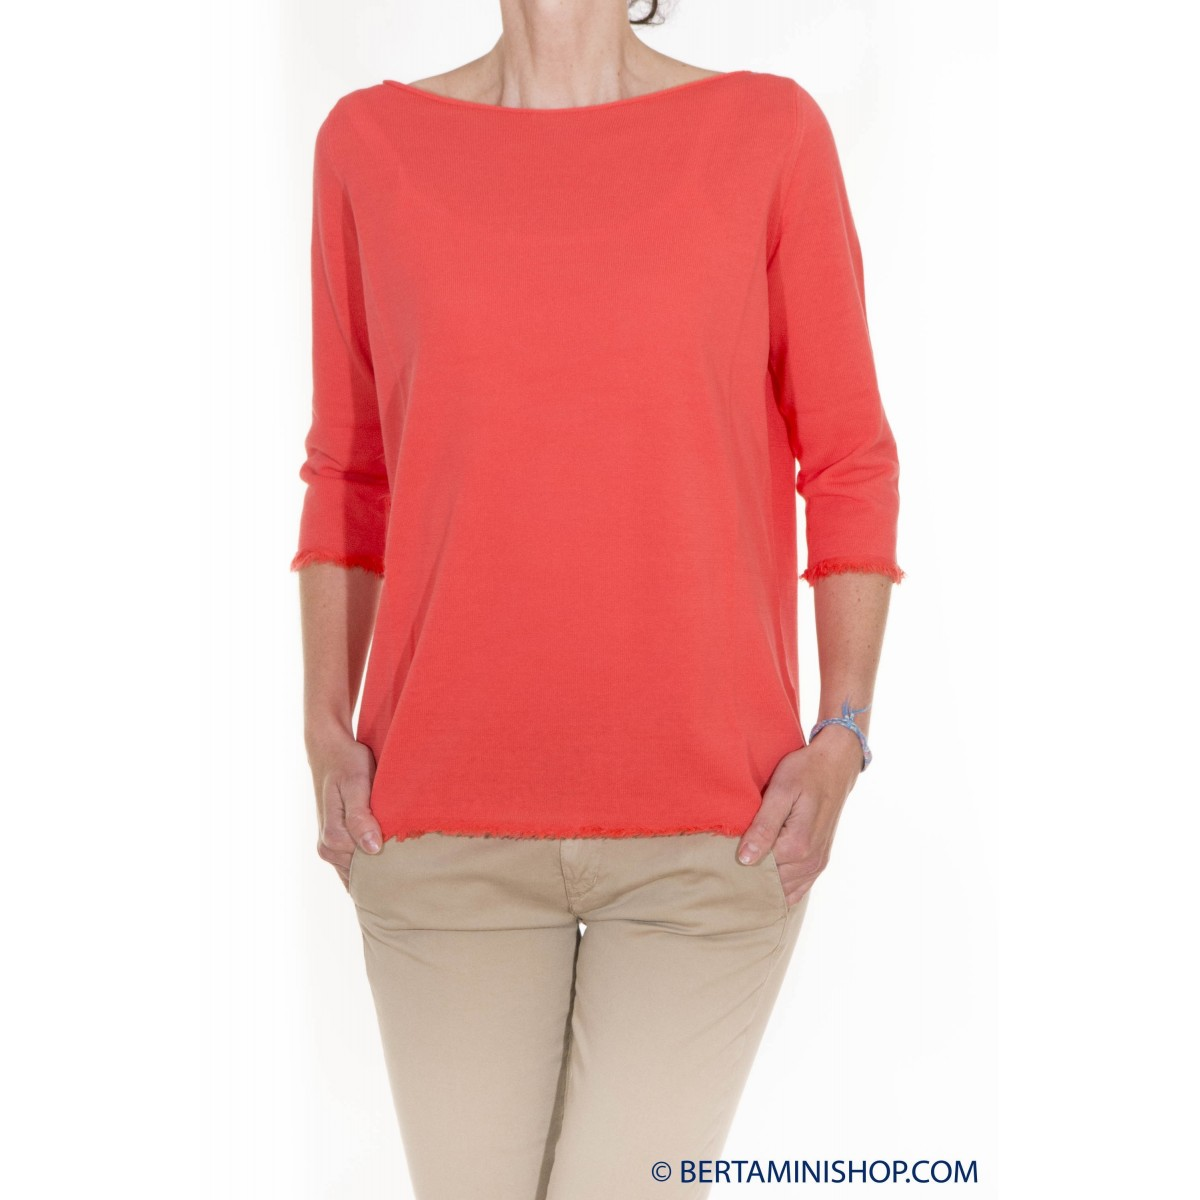 Sweater Kangra Damen - 1571/13 264 - Arancio